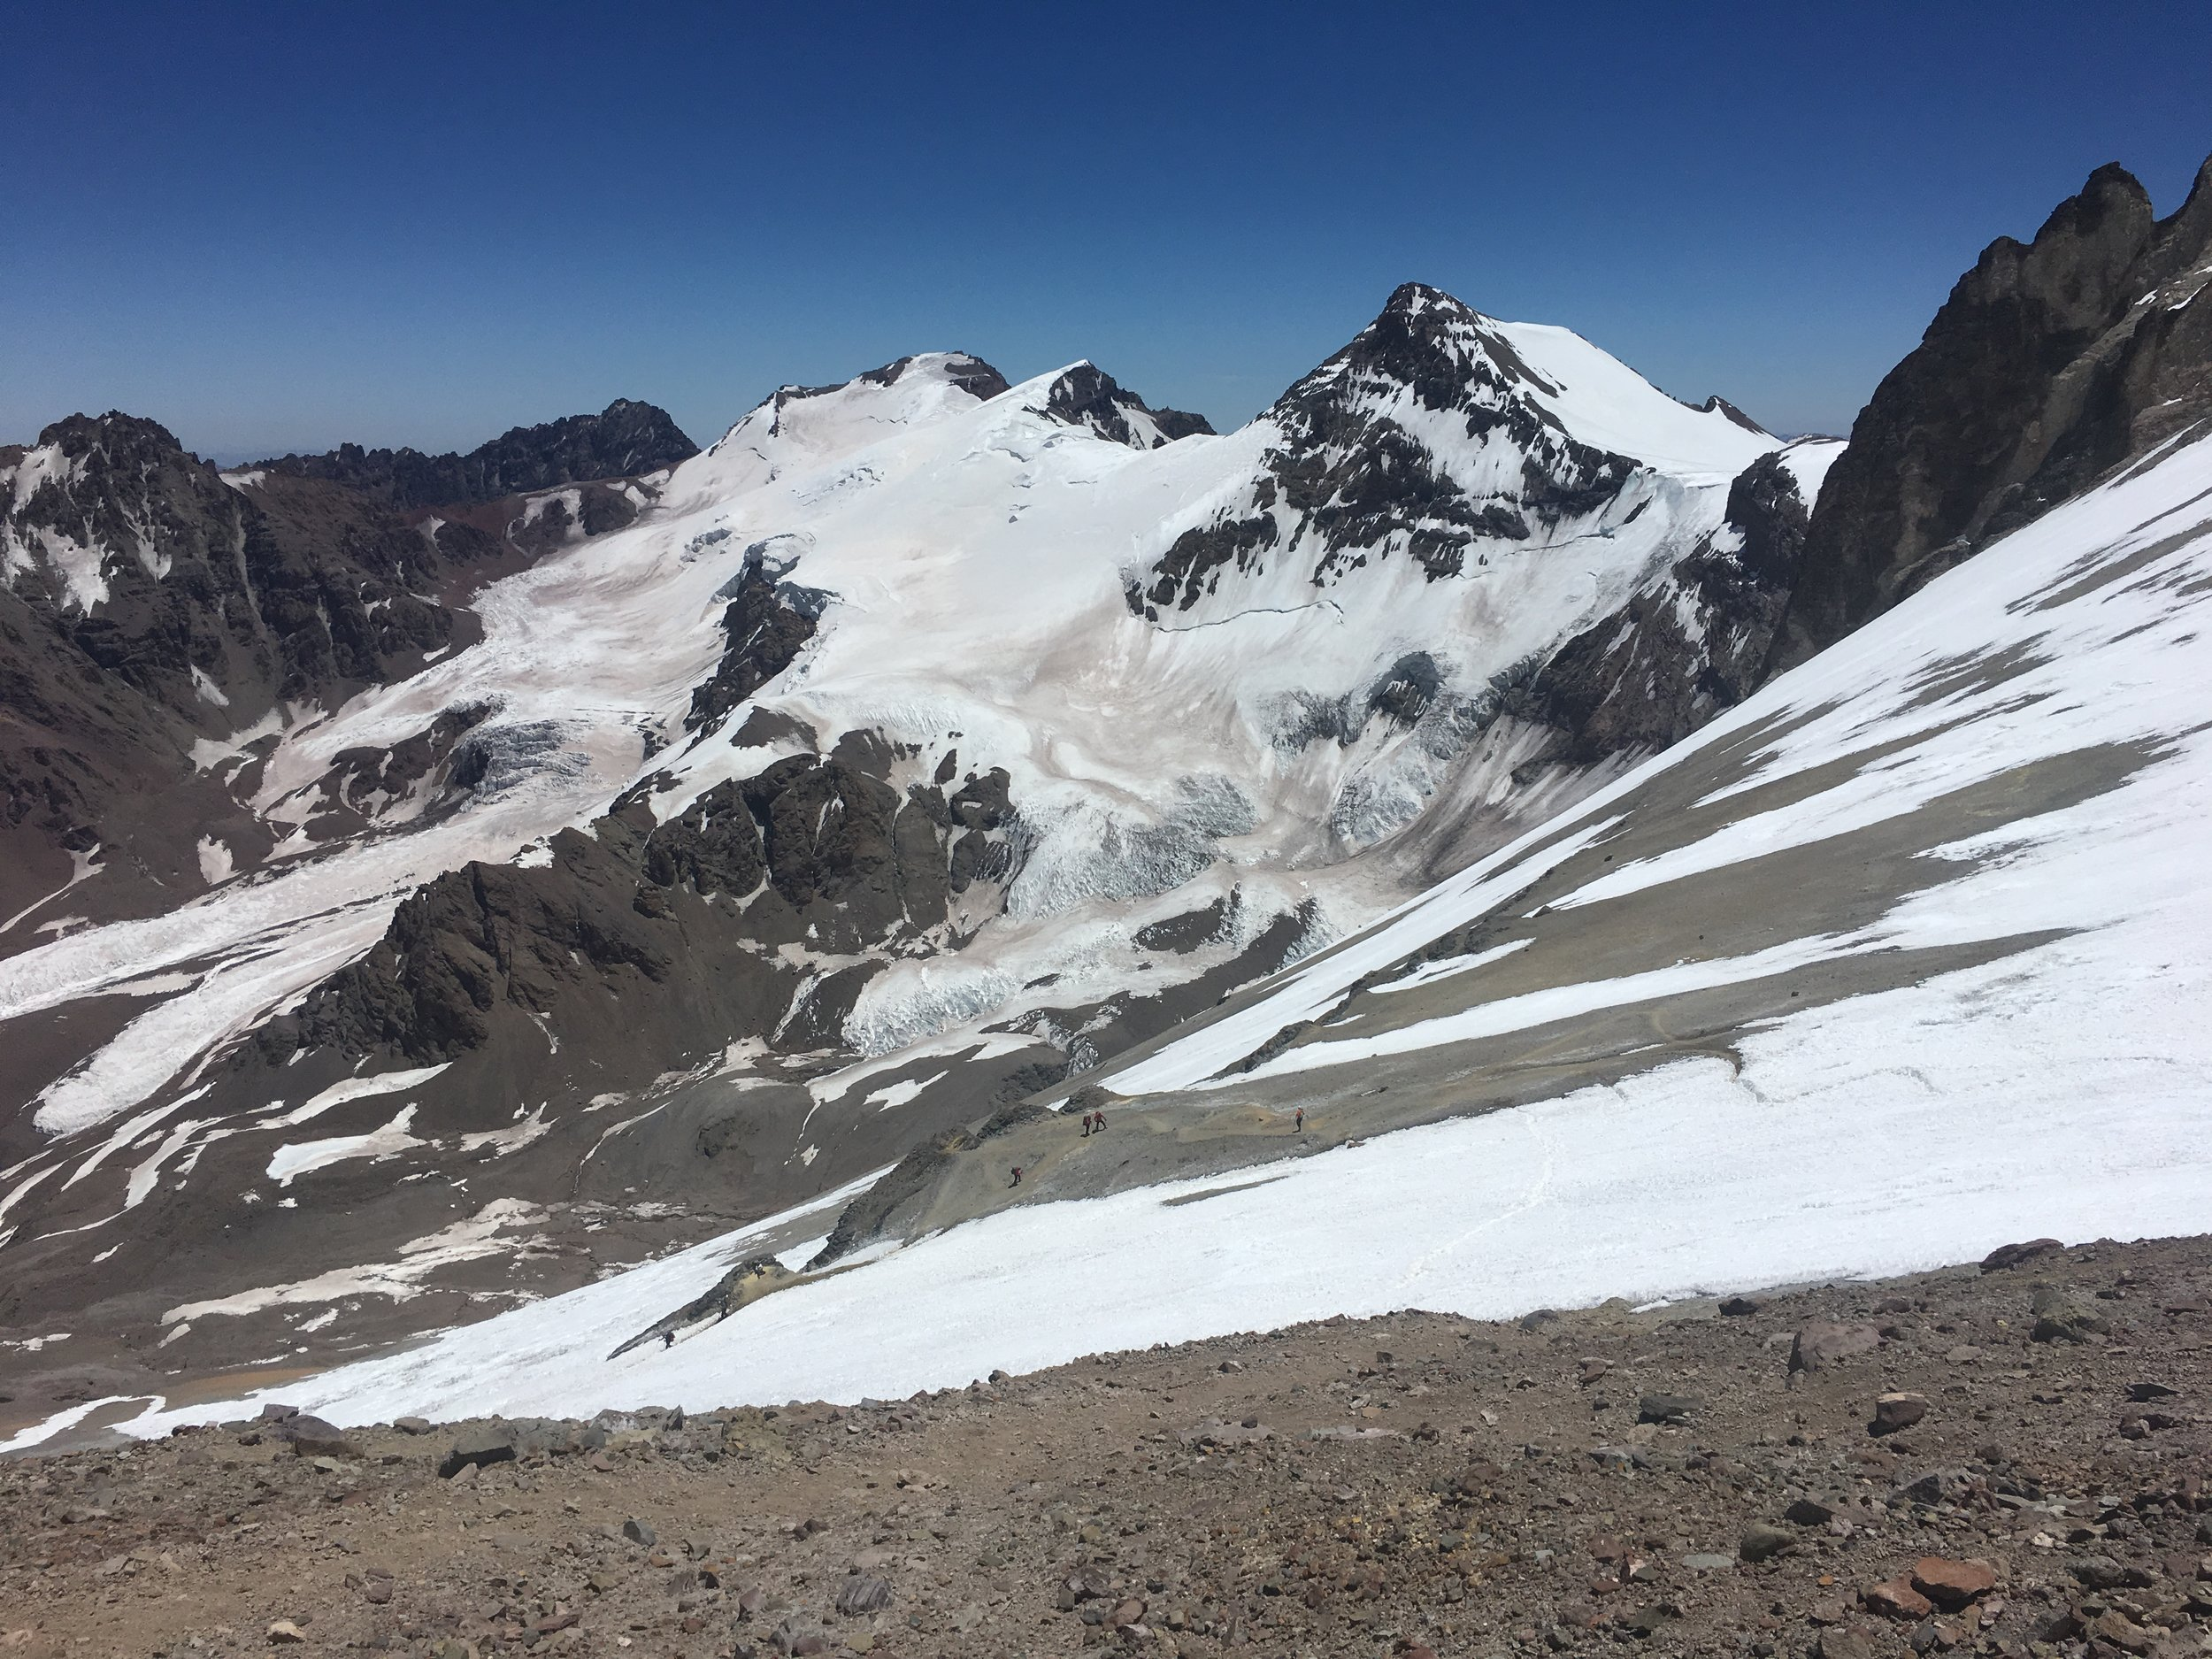 2/3rds the way up to Nido; if you look closely, you can see Polish endurance crusher Anna Figura (right most figure) who tried for a speed ascent on Jan 12 but had to abort due to dehydration